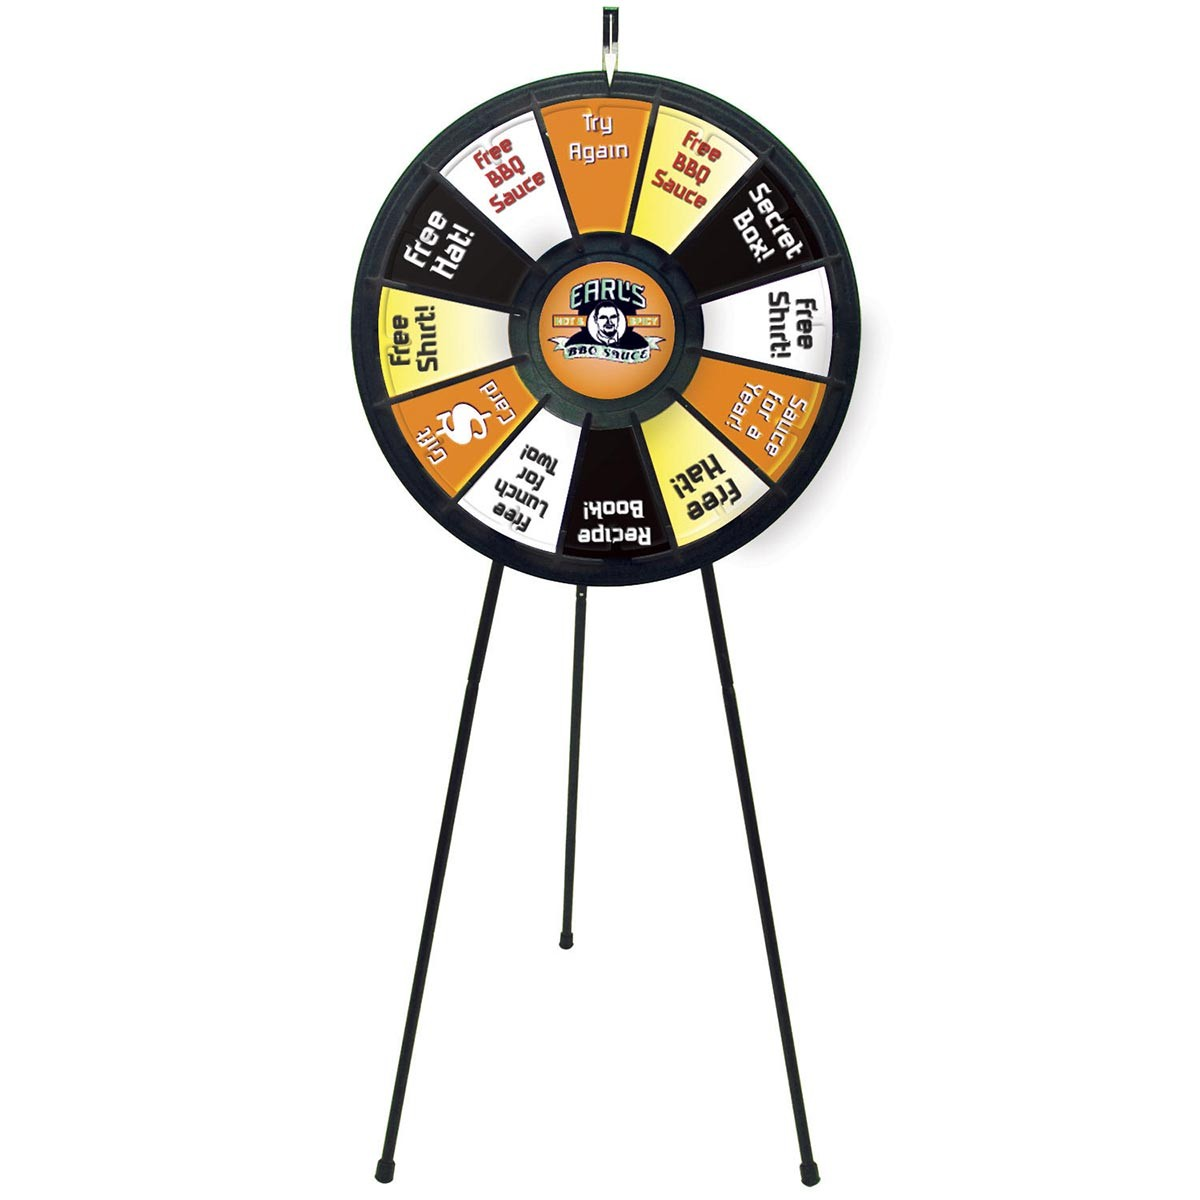 custom printed spin the wheel game